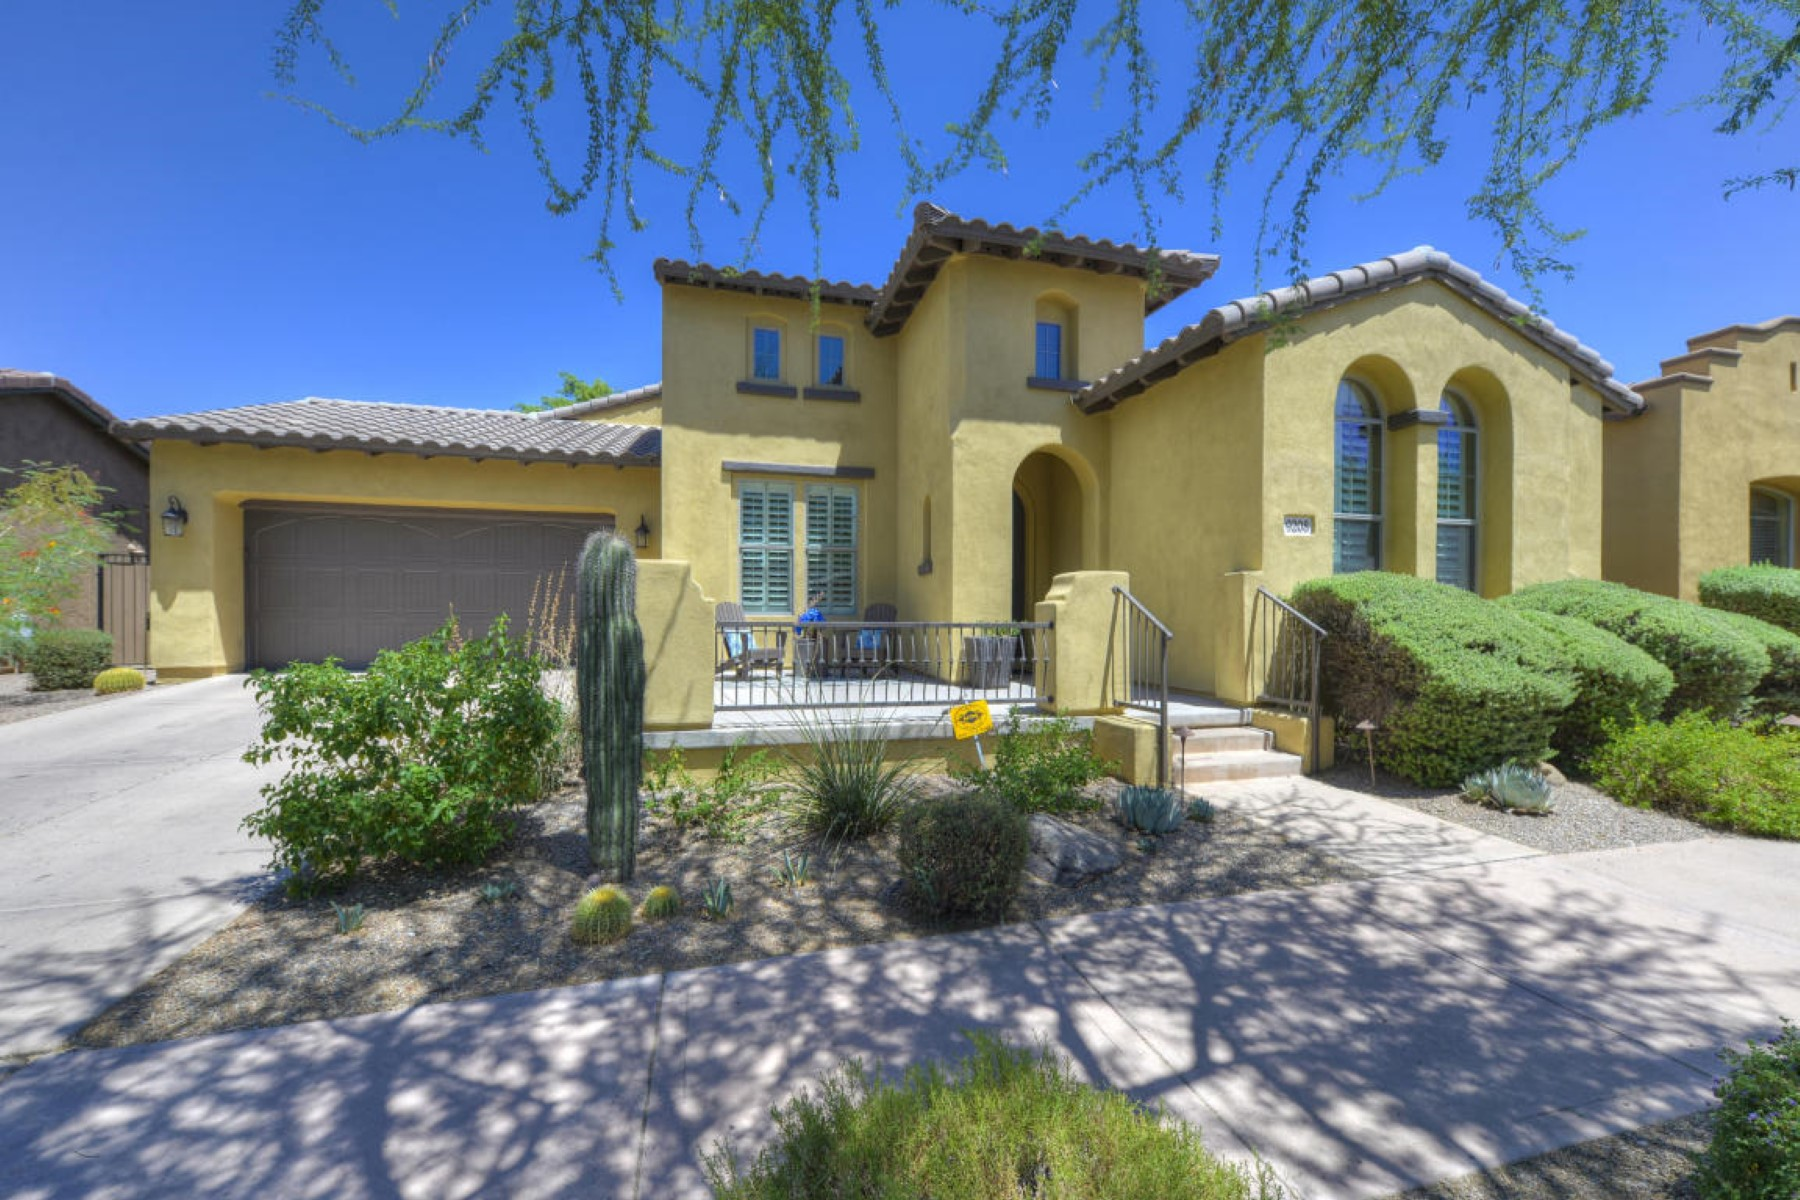 Maison unifamiliale pour l Vente à DC Ranch delight 9208 E Via De Vaquero Dr Scottsdale, Arizona, 85255 États-Unis